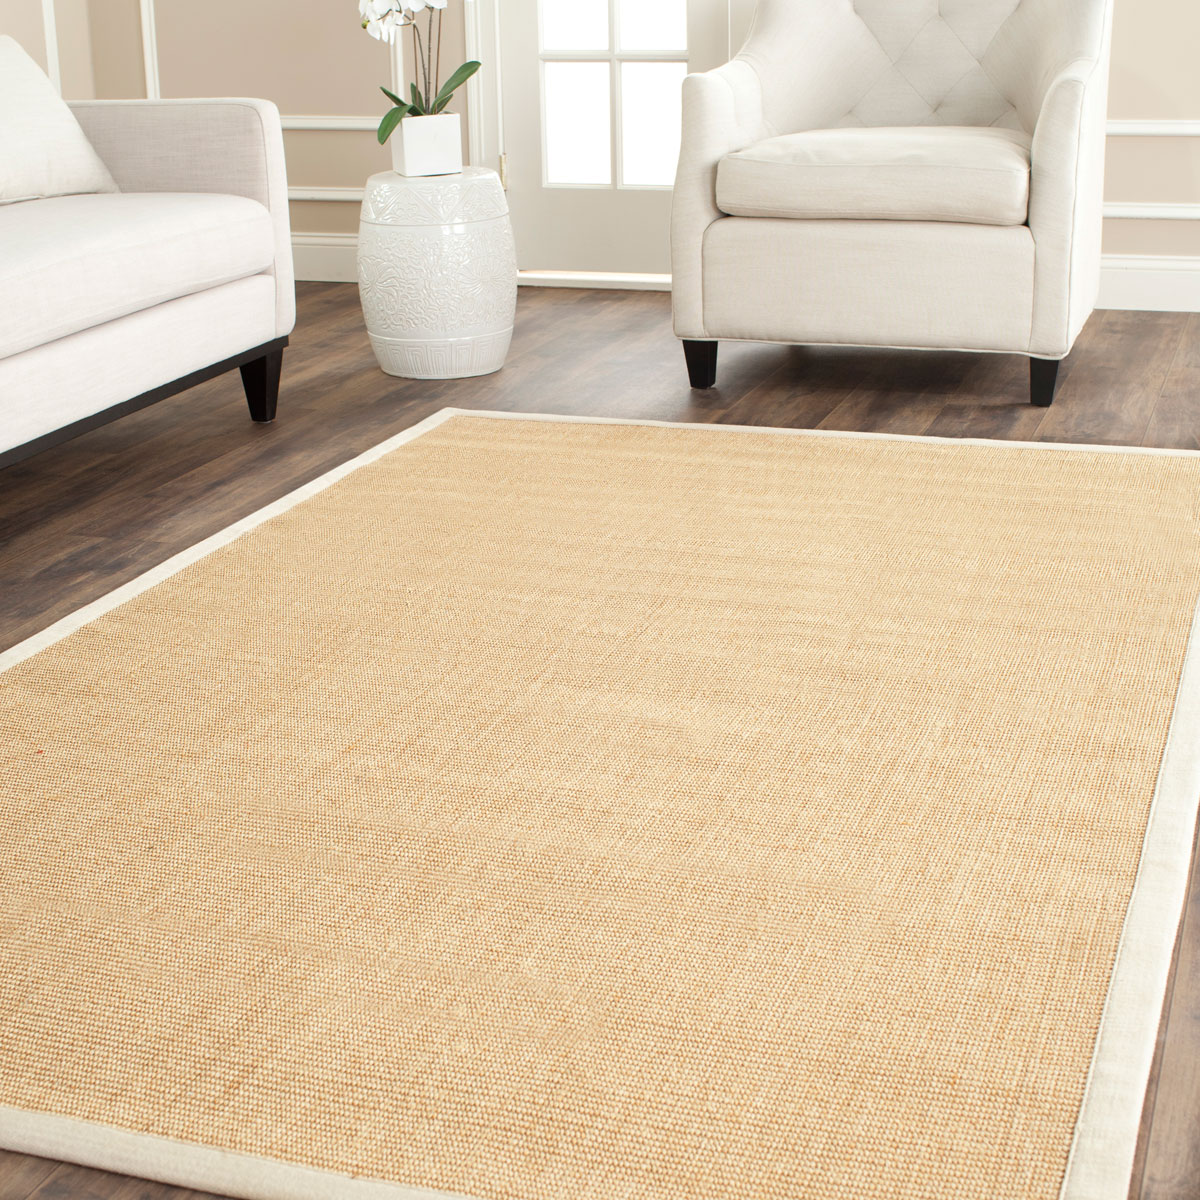 Rug Nf441k Natural Fiber Area Rugs By Safavieh